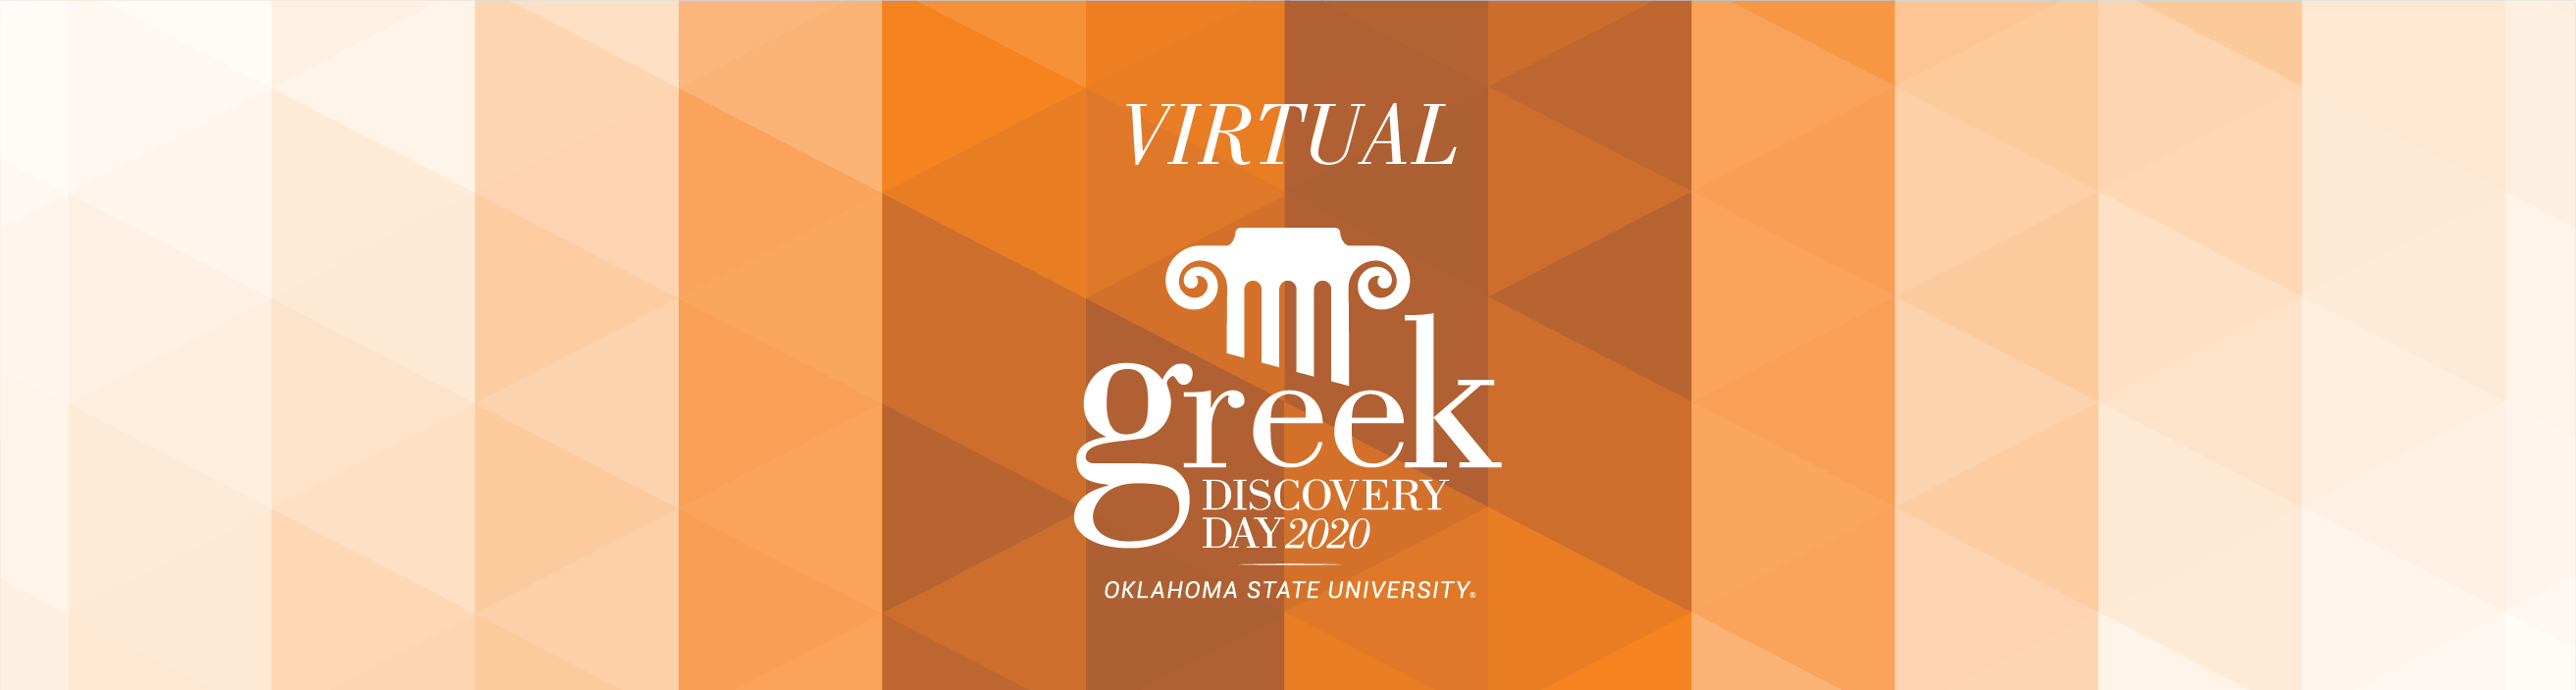 Virtual Greek Discovery Day